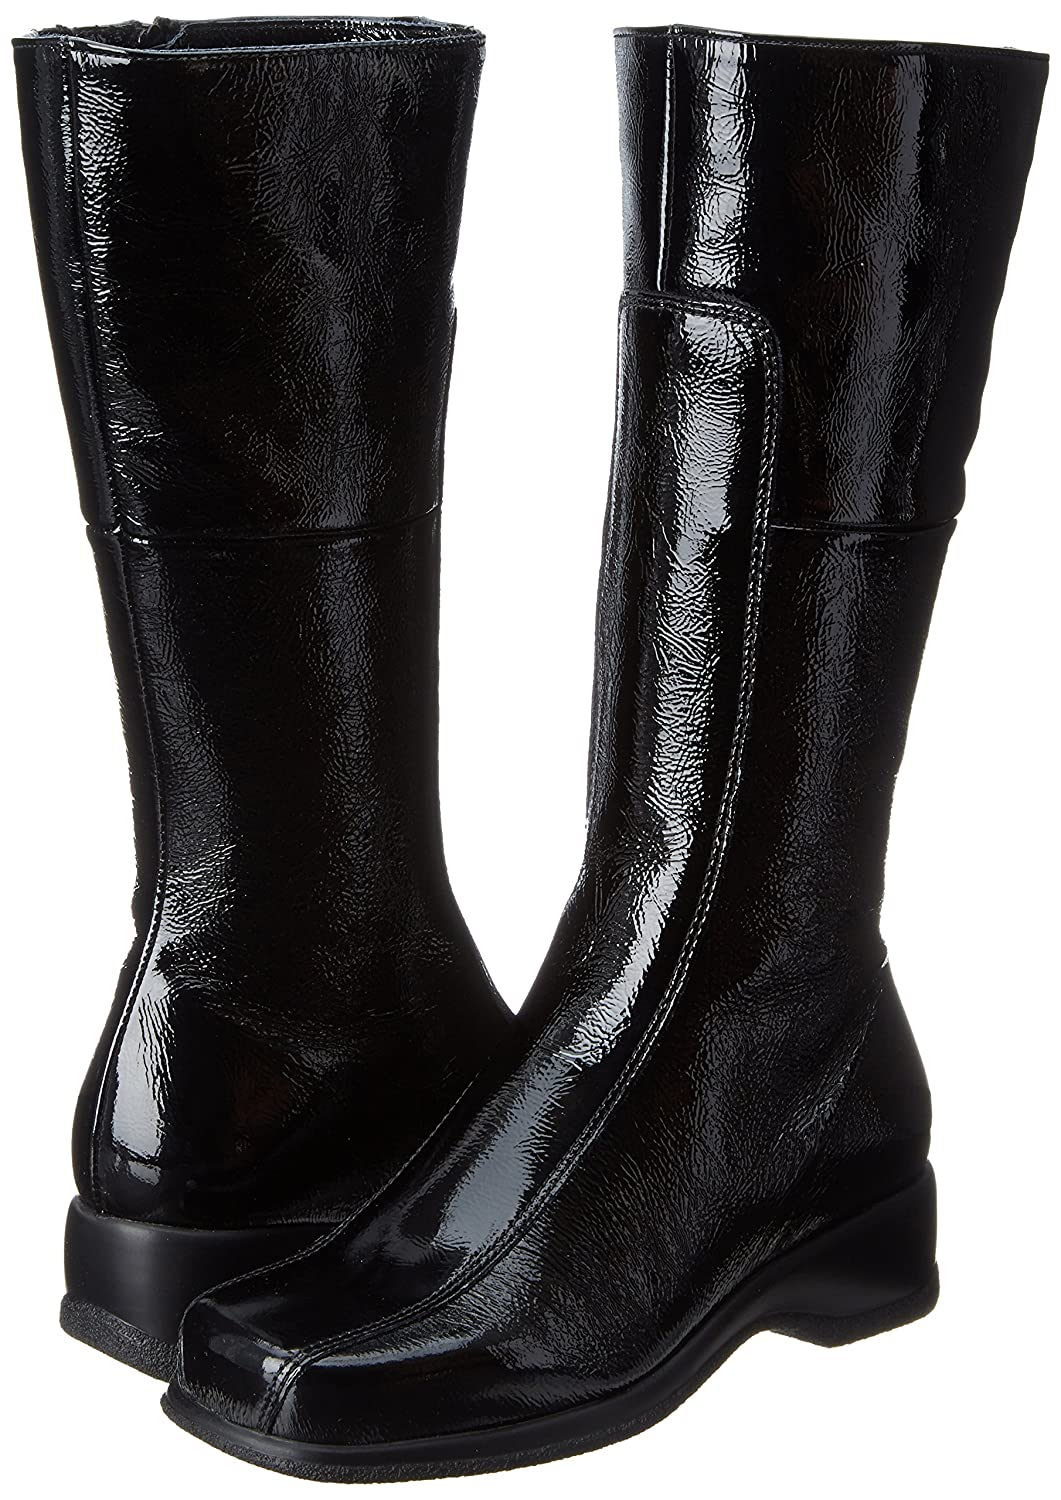 La Canadienne Women's Blanche Boot B004S8WMTW 10 W US|Black Patent